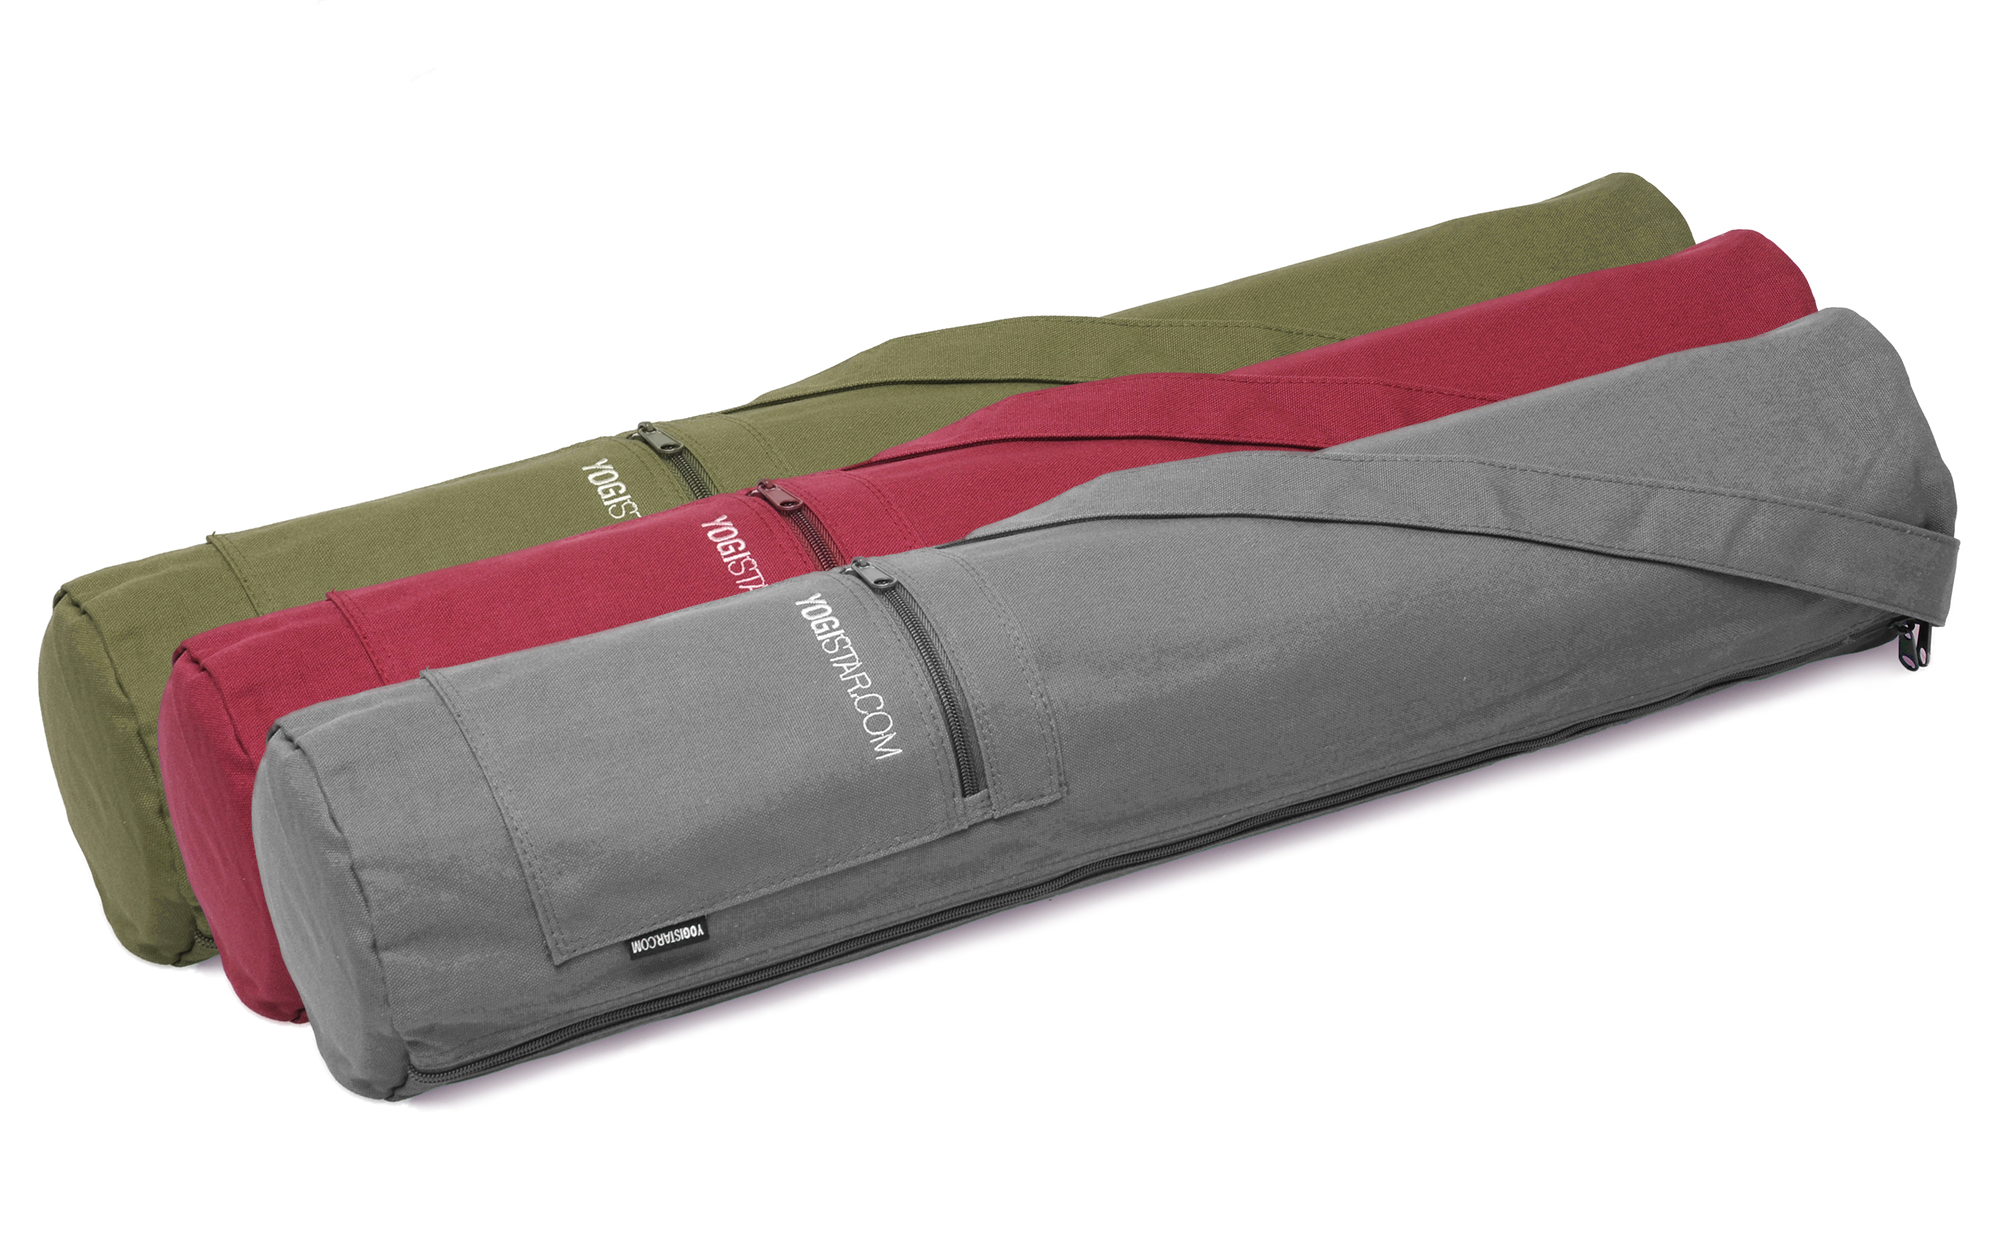 593defce8f Yoga bag yogibag® basic - zip - cotton - 65 cm buy online at ...